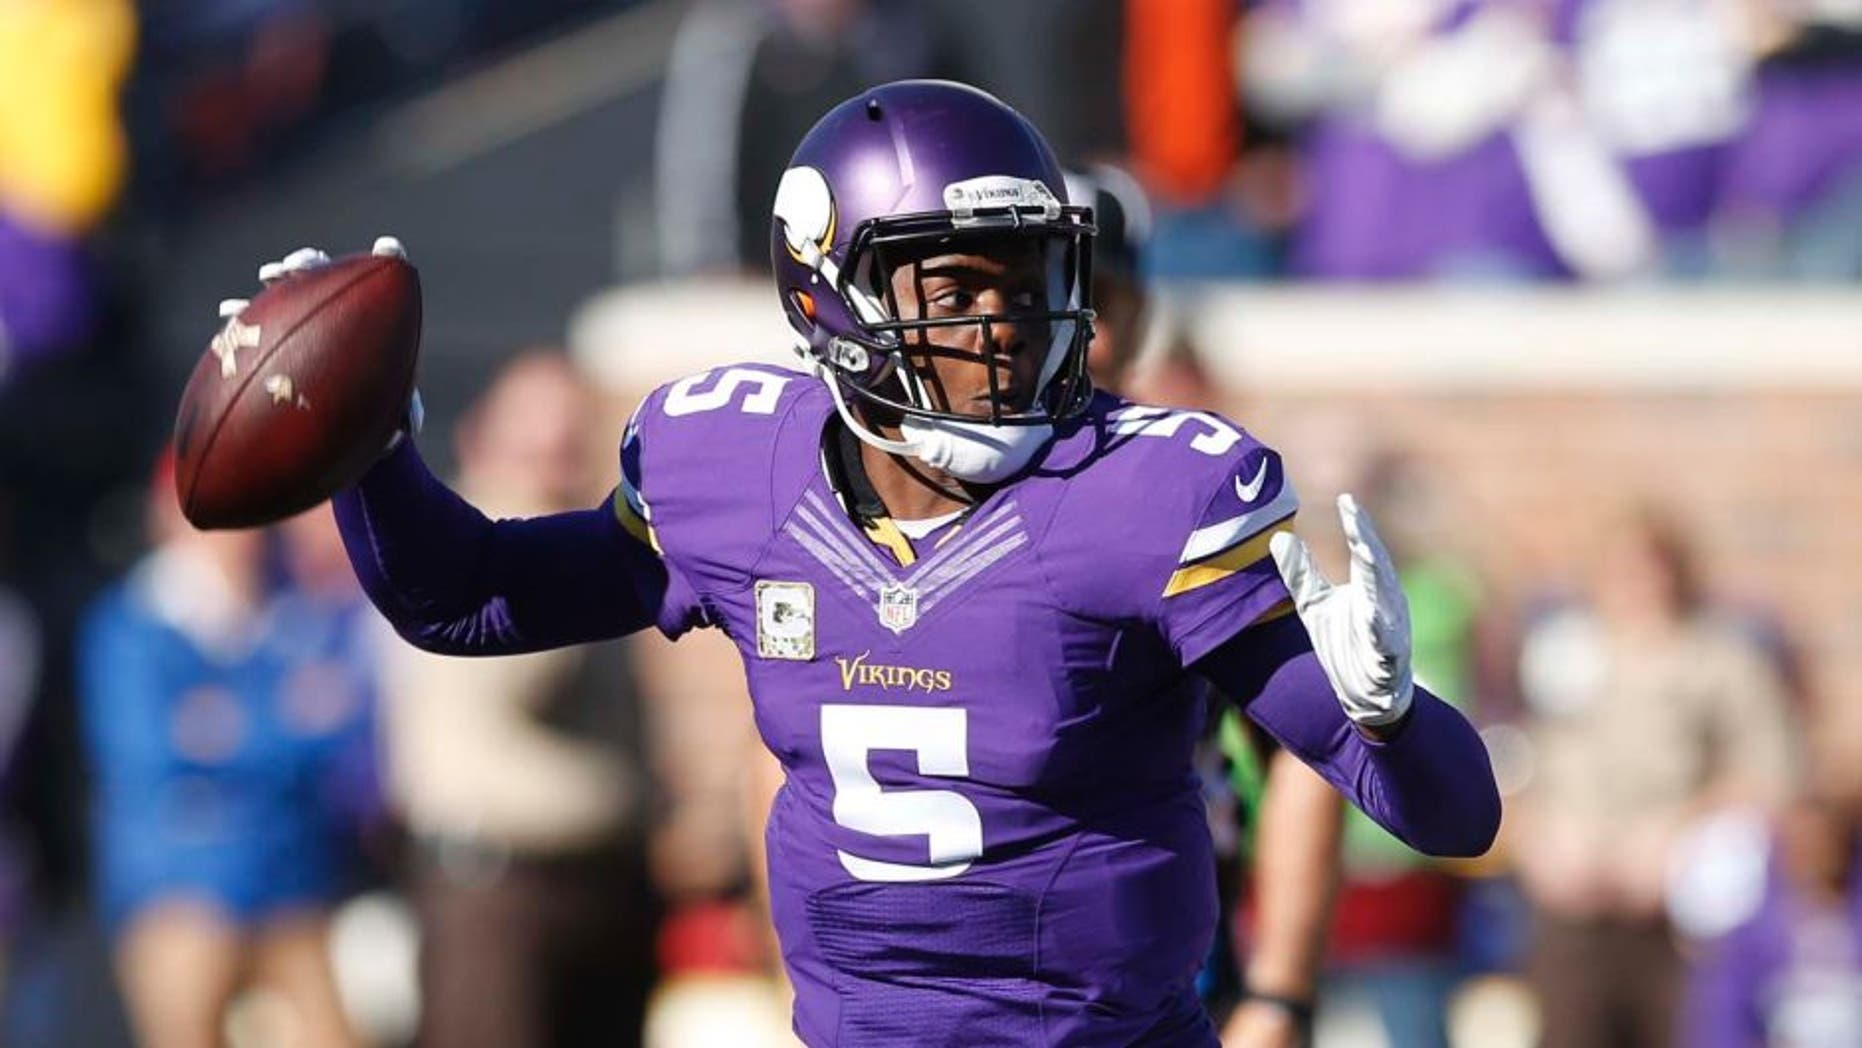 Minnesota Vikings quarterback Teddy Bridgewater prepares to throw during the first half of an NFL football game against the St. Louis Rams on Sunday, Nov. 8, 2015, in Minneapolis.